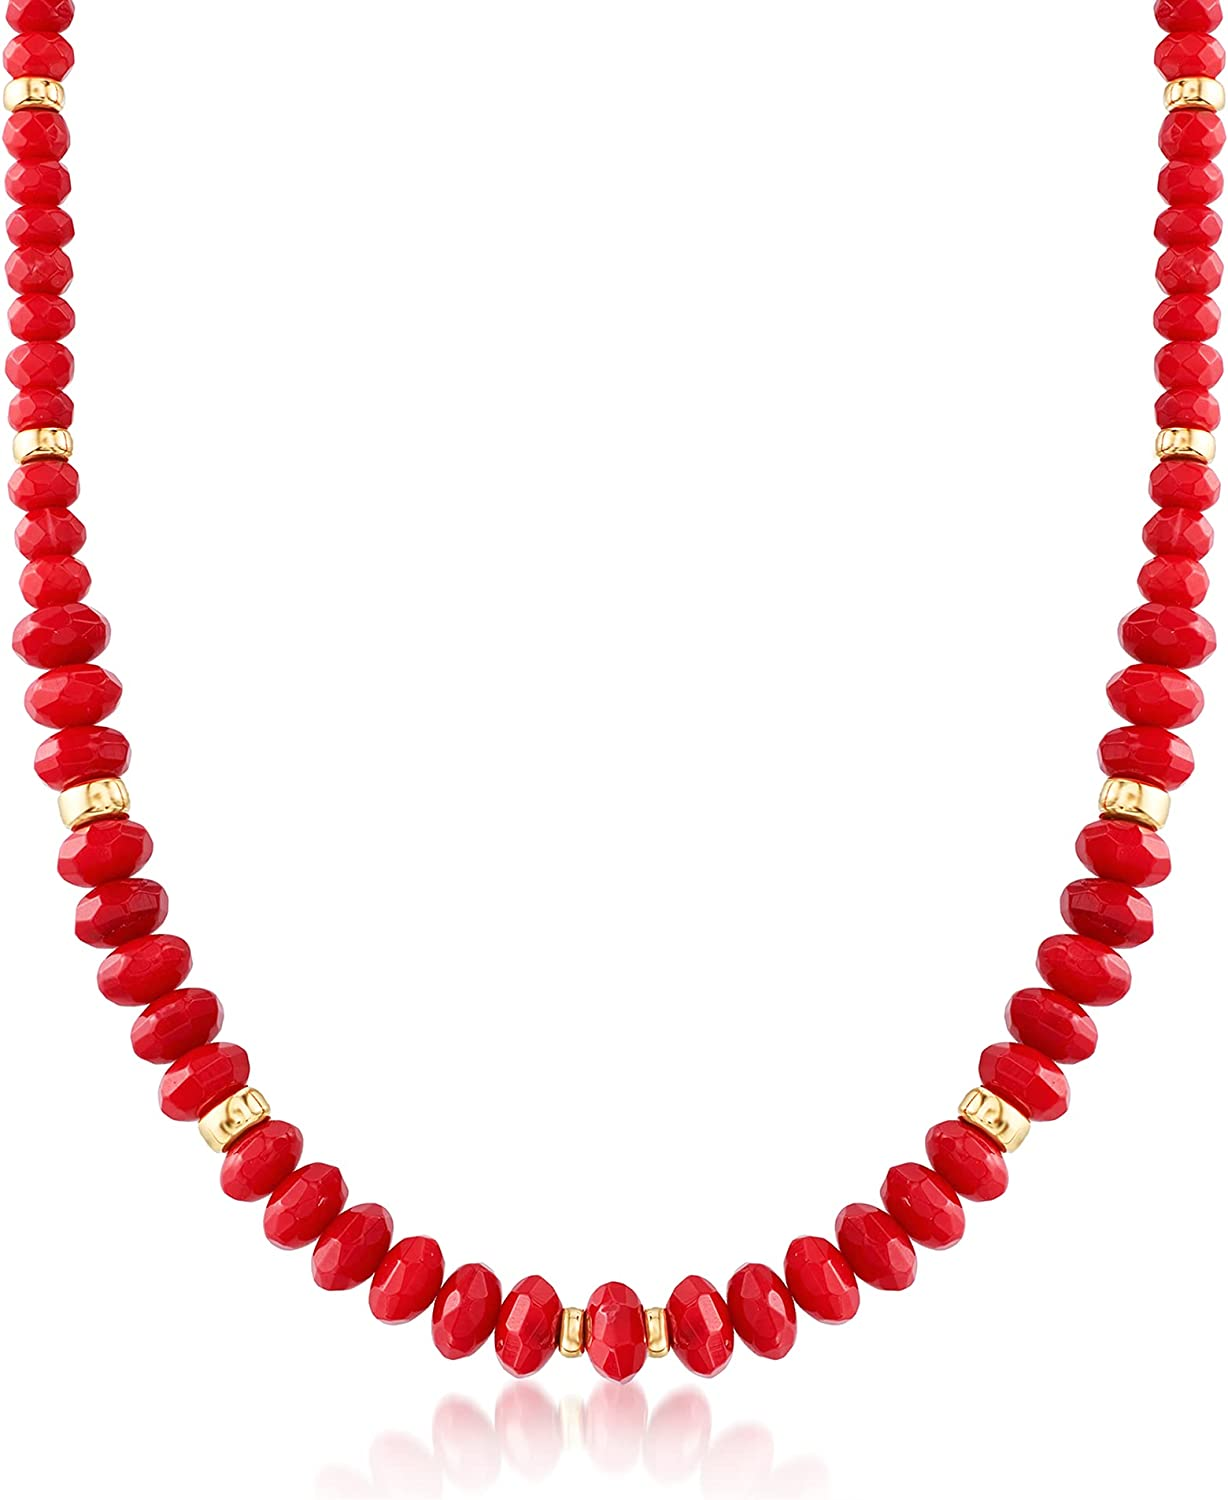 Ross-Simons Graduated Red Coral Bead Necklace With 14kt Yellow Gold